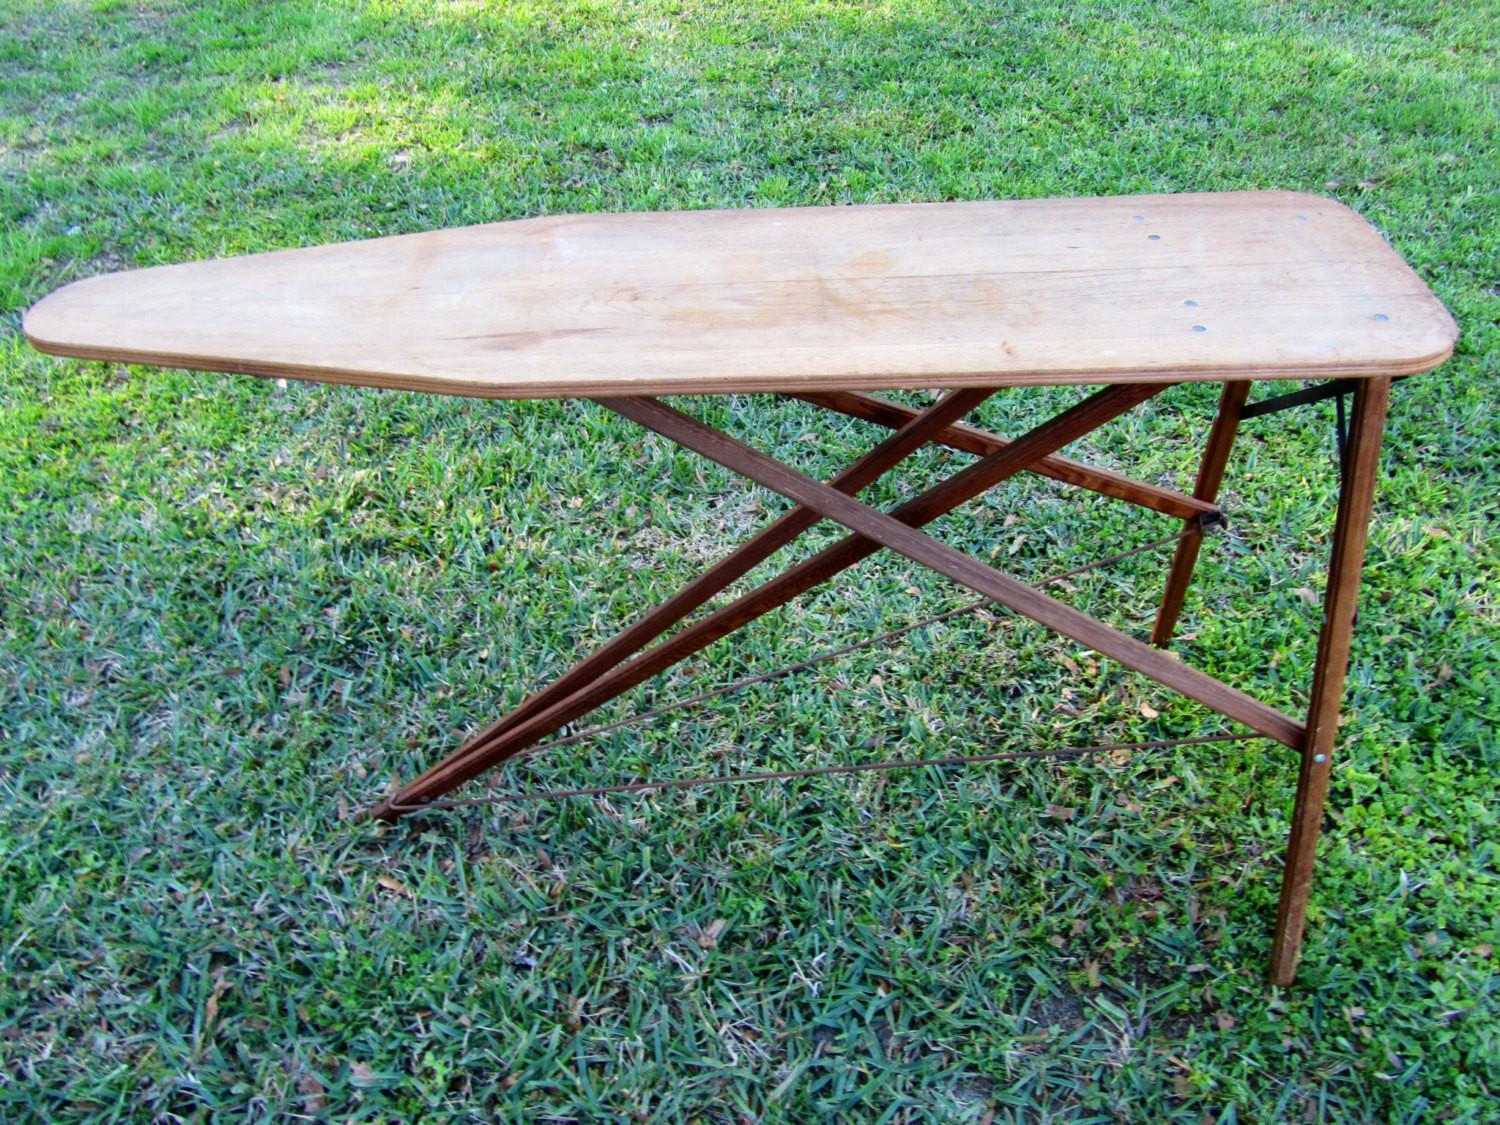 Rustic Vintage Wooden Ironing Board